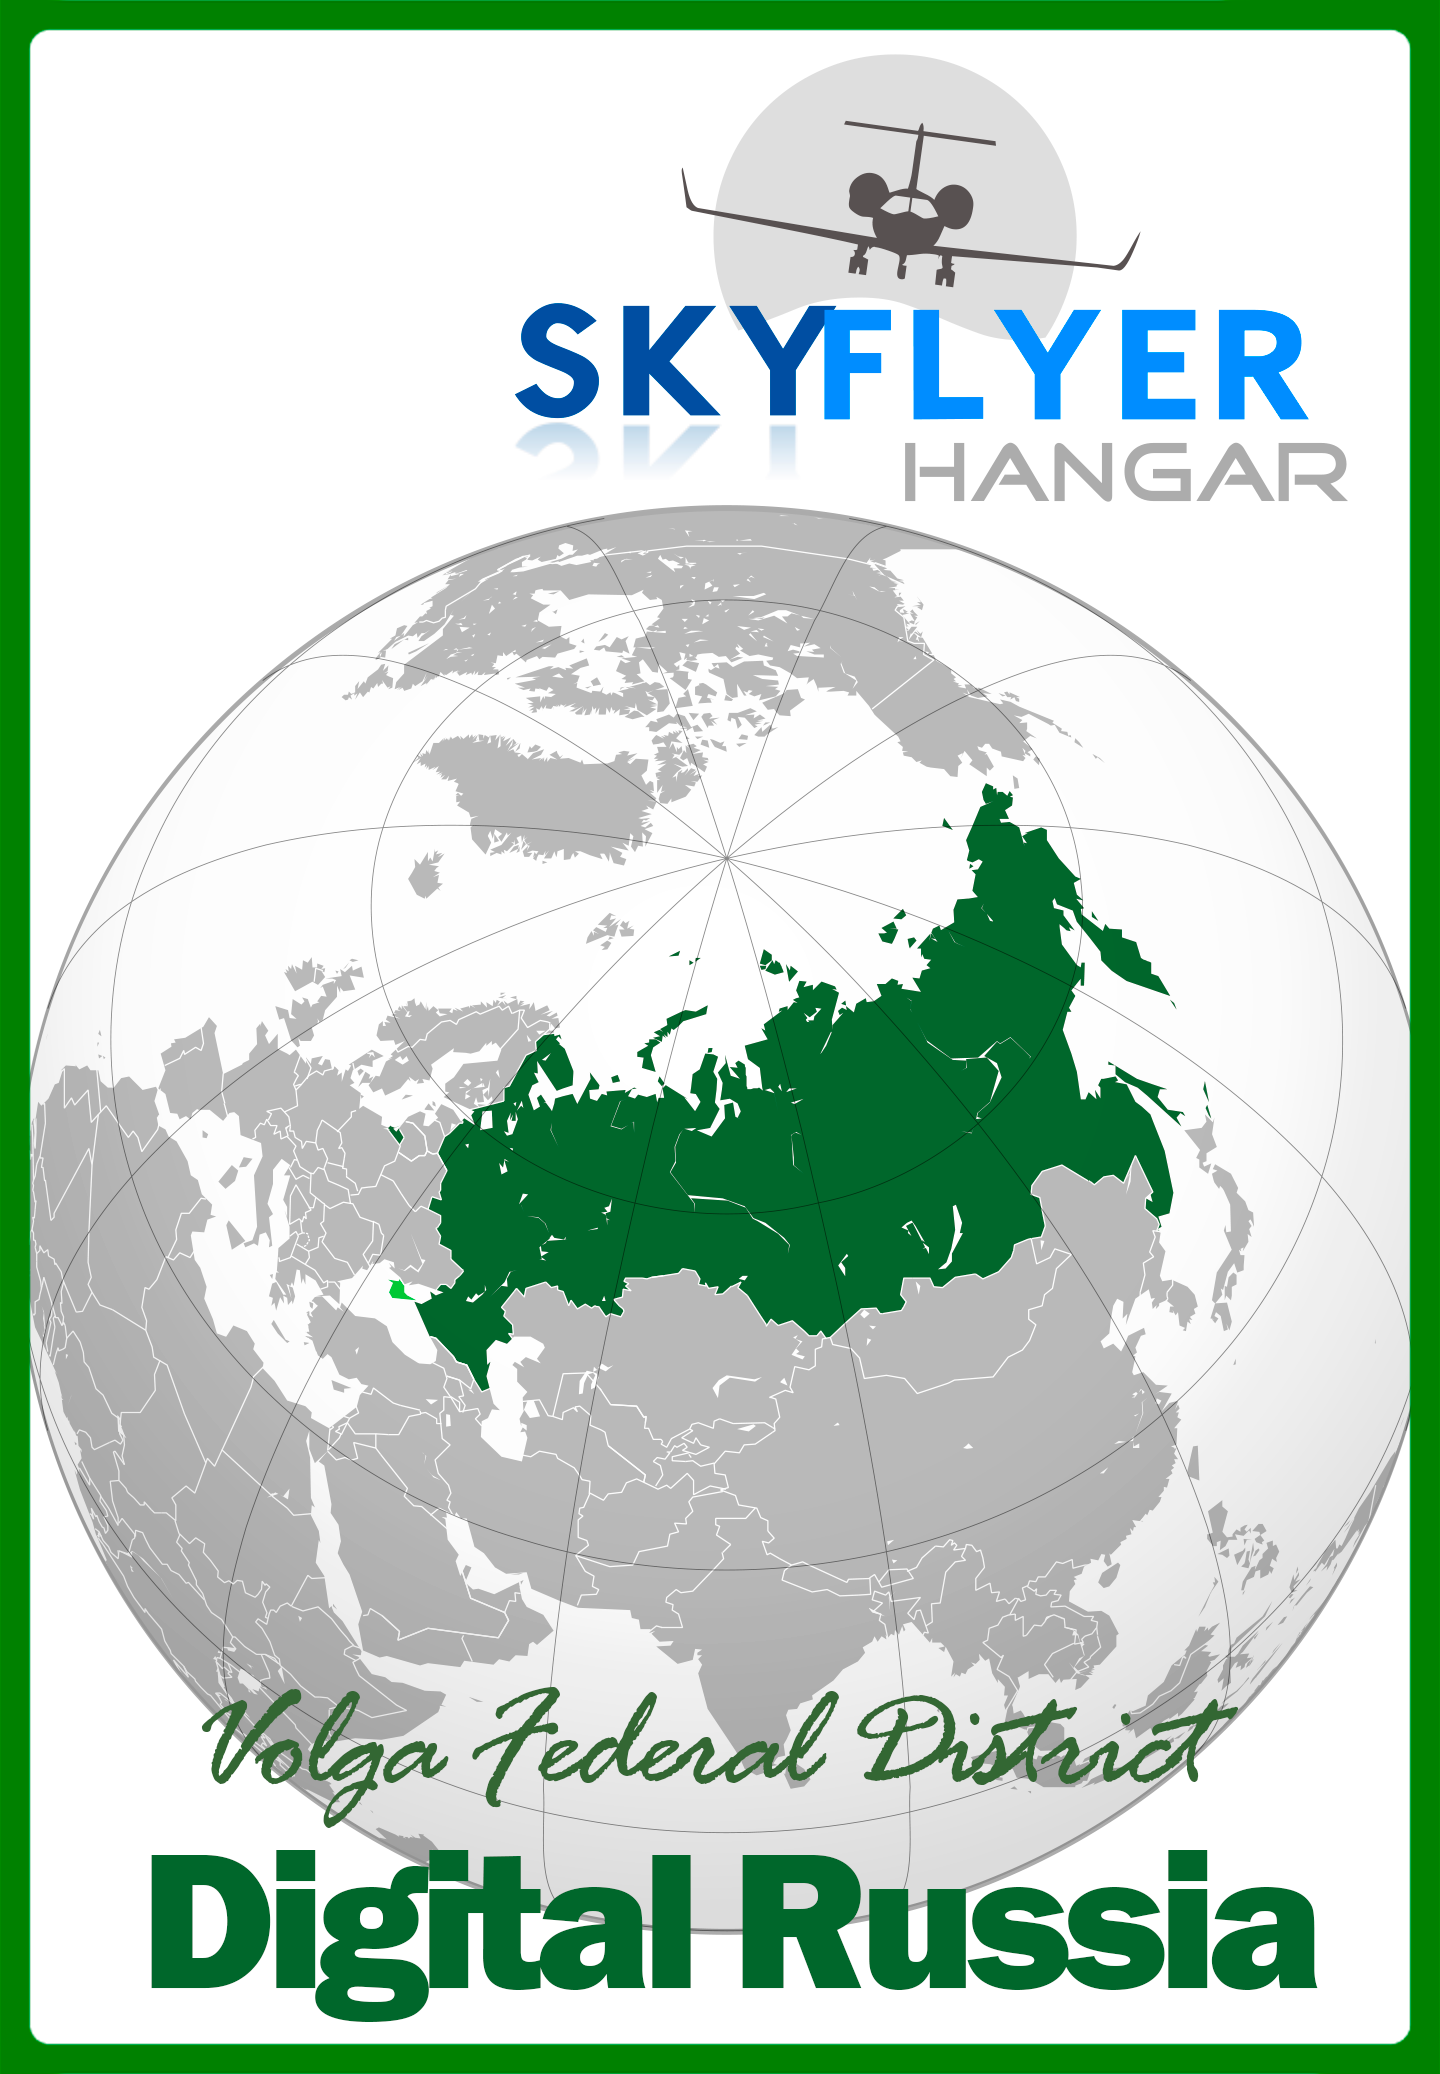 SKY FLYER HANGAR - DIGITAL RUSSIA VOLGA FEDERAL DISTRICT P3D